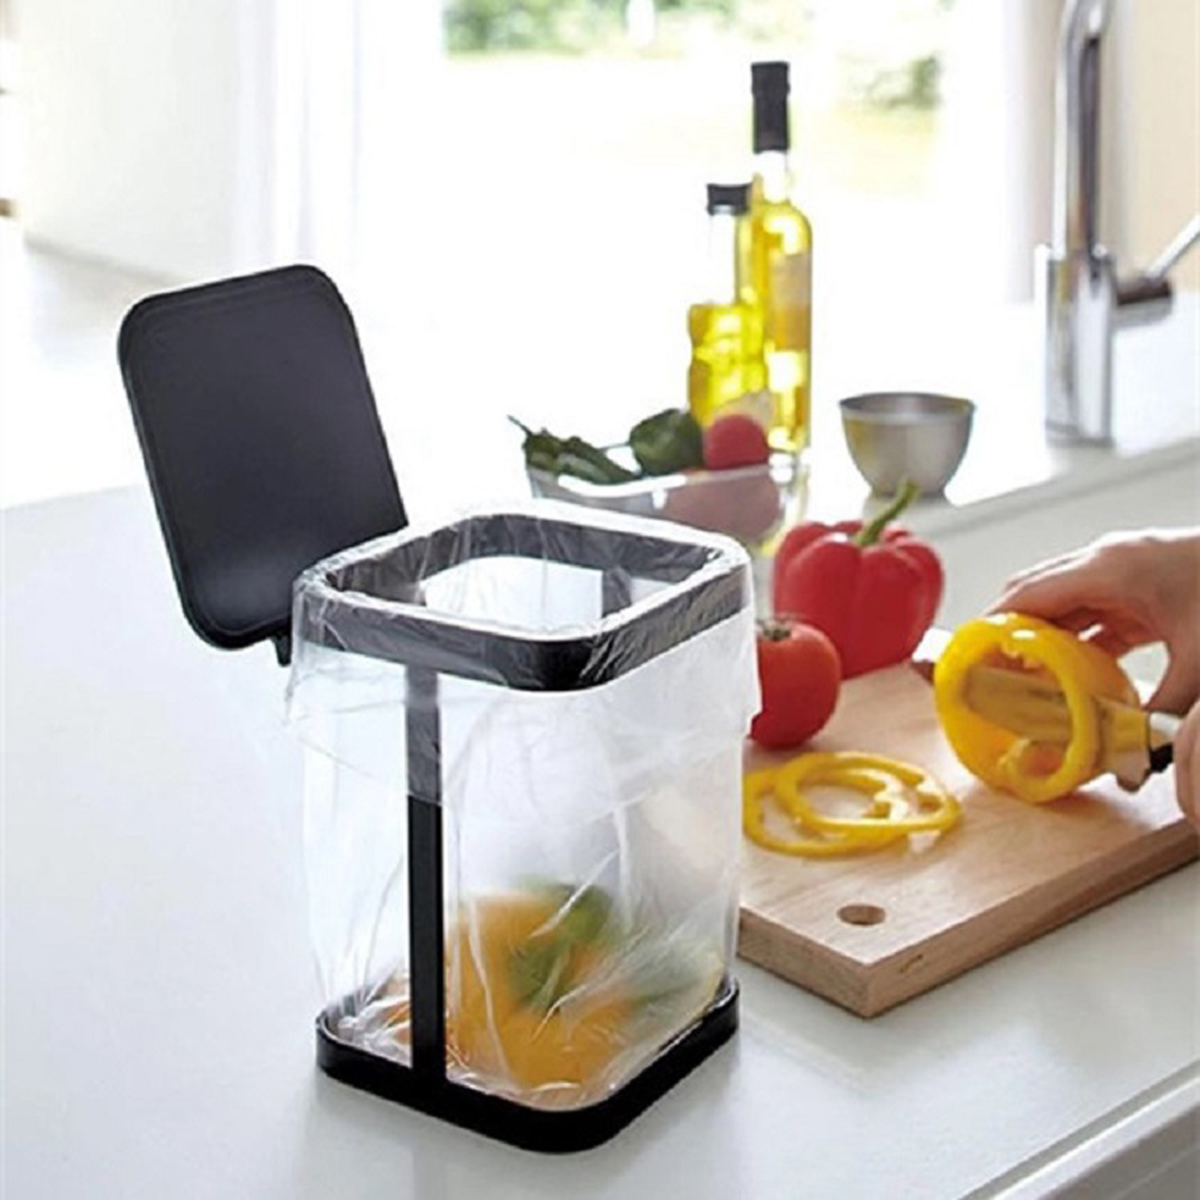 Mini Small Waste Bins For Desktop Garbage Basket Trash Can Table Home Office